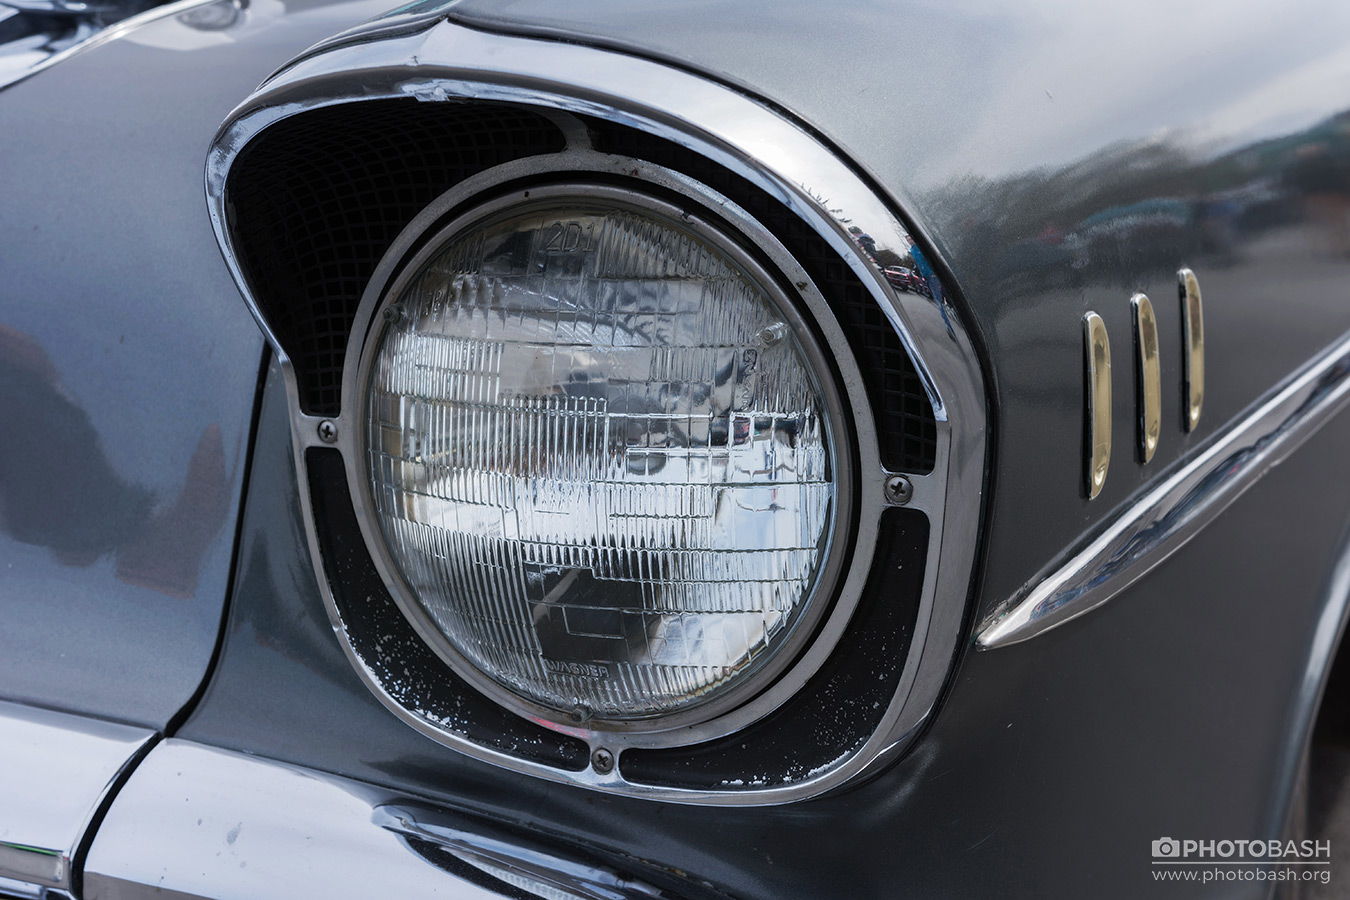 Collector-Cars-Vehicles-Headlight.jpg